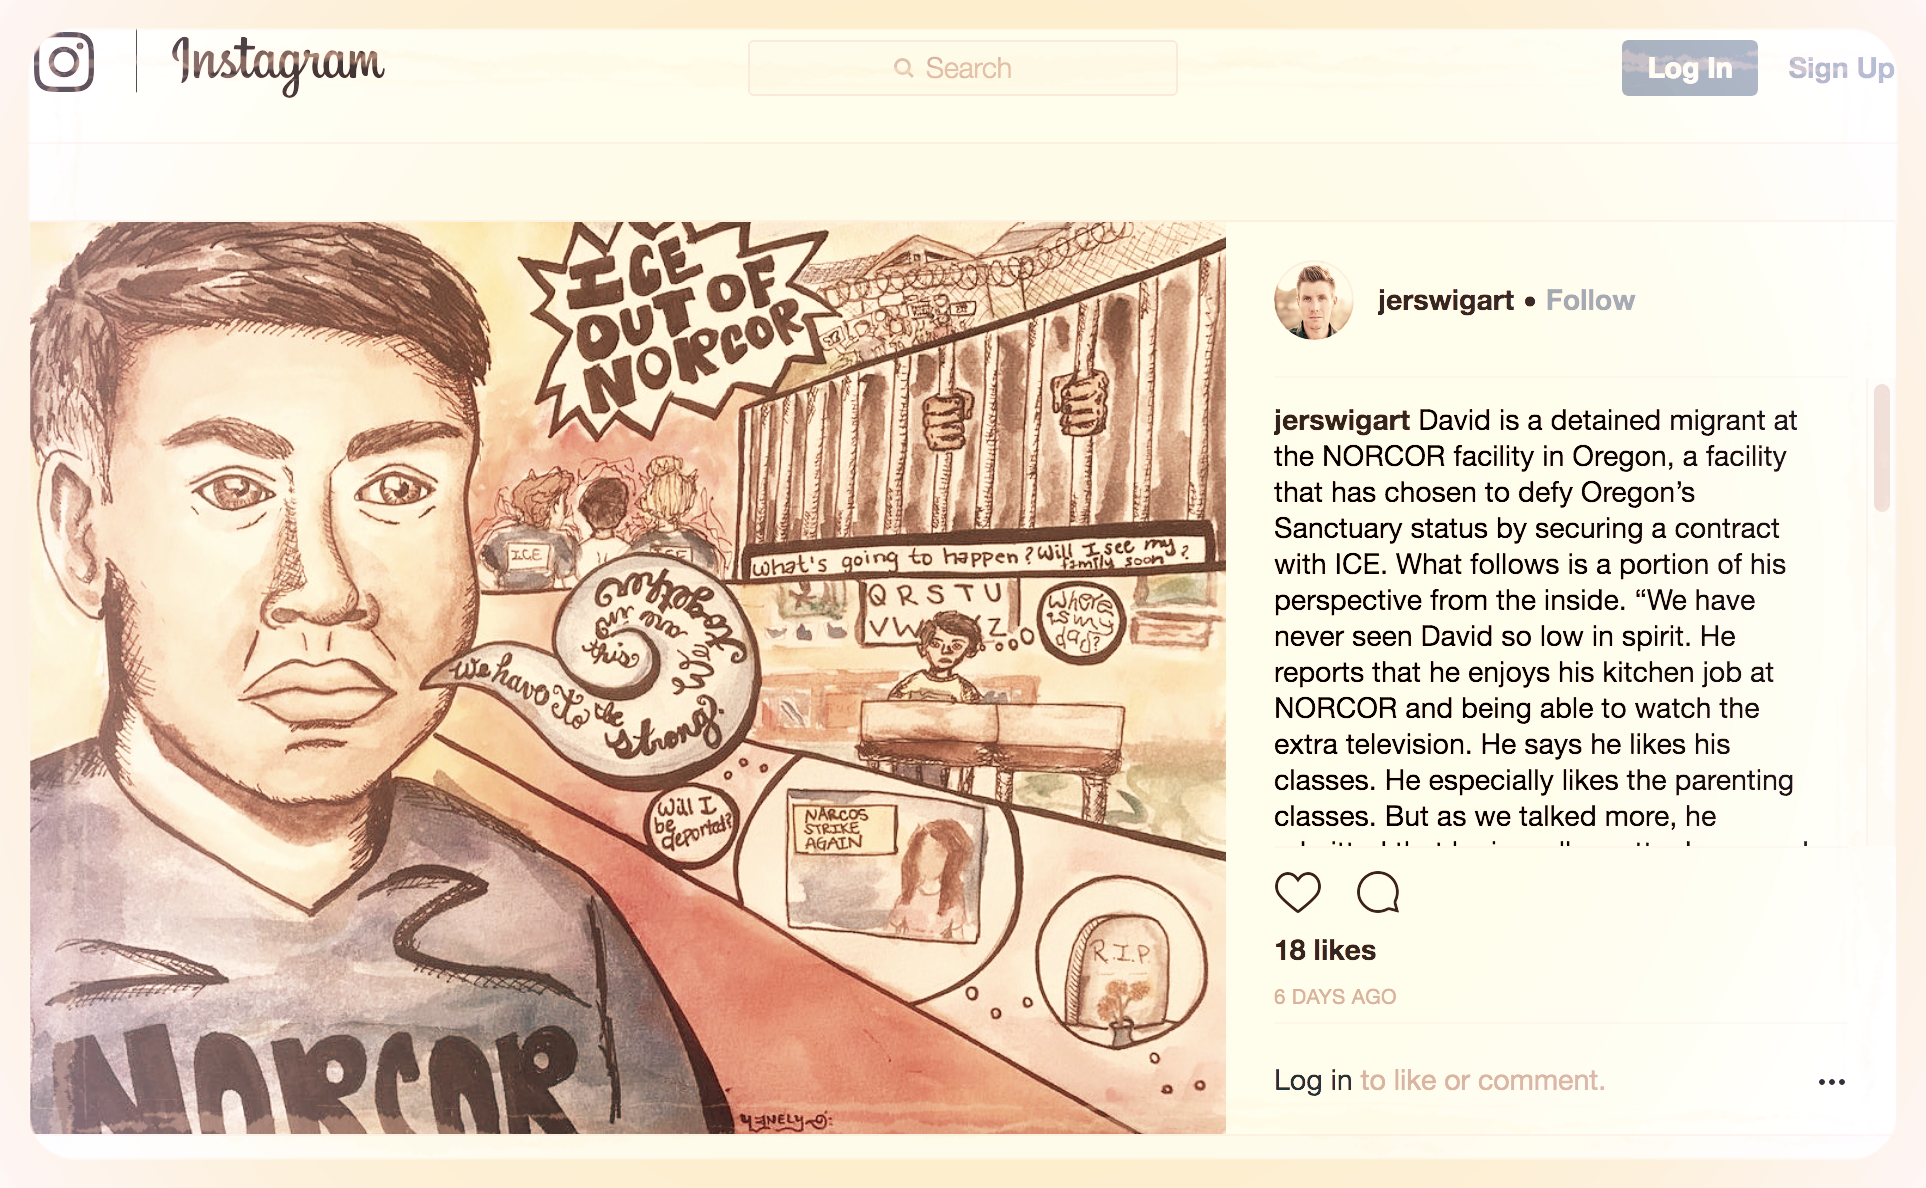 Amplify! - Copy an image and an excerpt from one of the stories of immigrants detained at NORCOR above. Share it on social media! Make sure to tag #ICEOutOfNORCOR and #IMIrJ. Let's make sure that our communities hear these immigrants' stories.